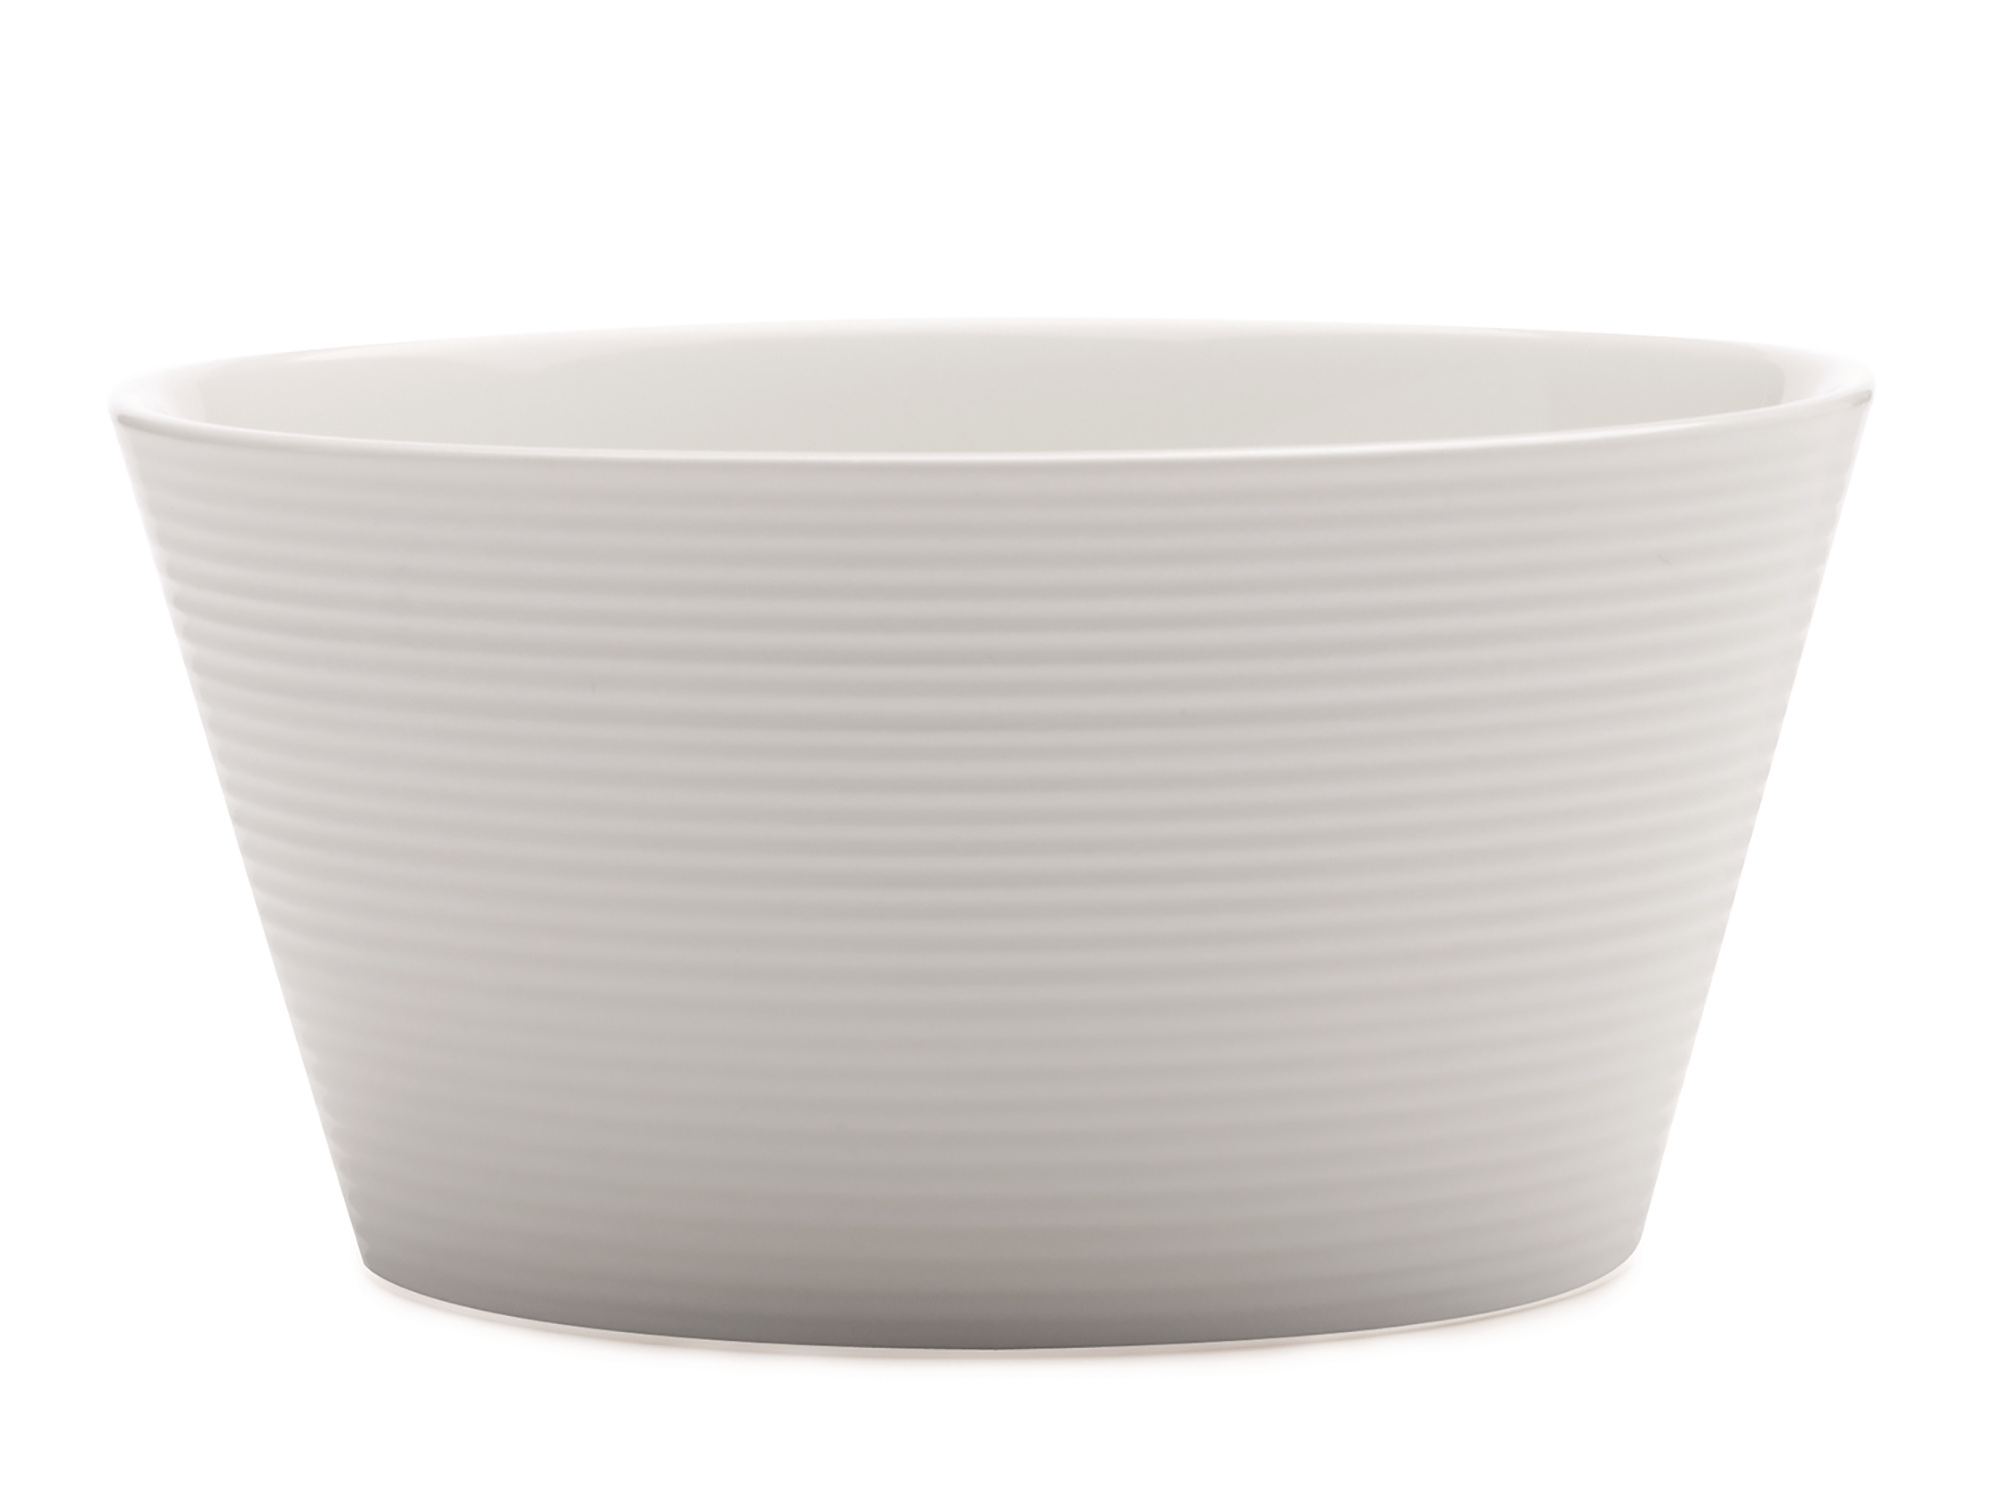 Casa Domani Casual White Evolve 15Cm Conical Bowl